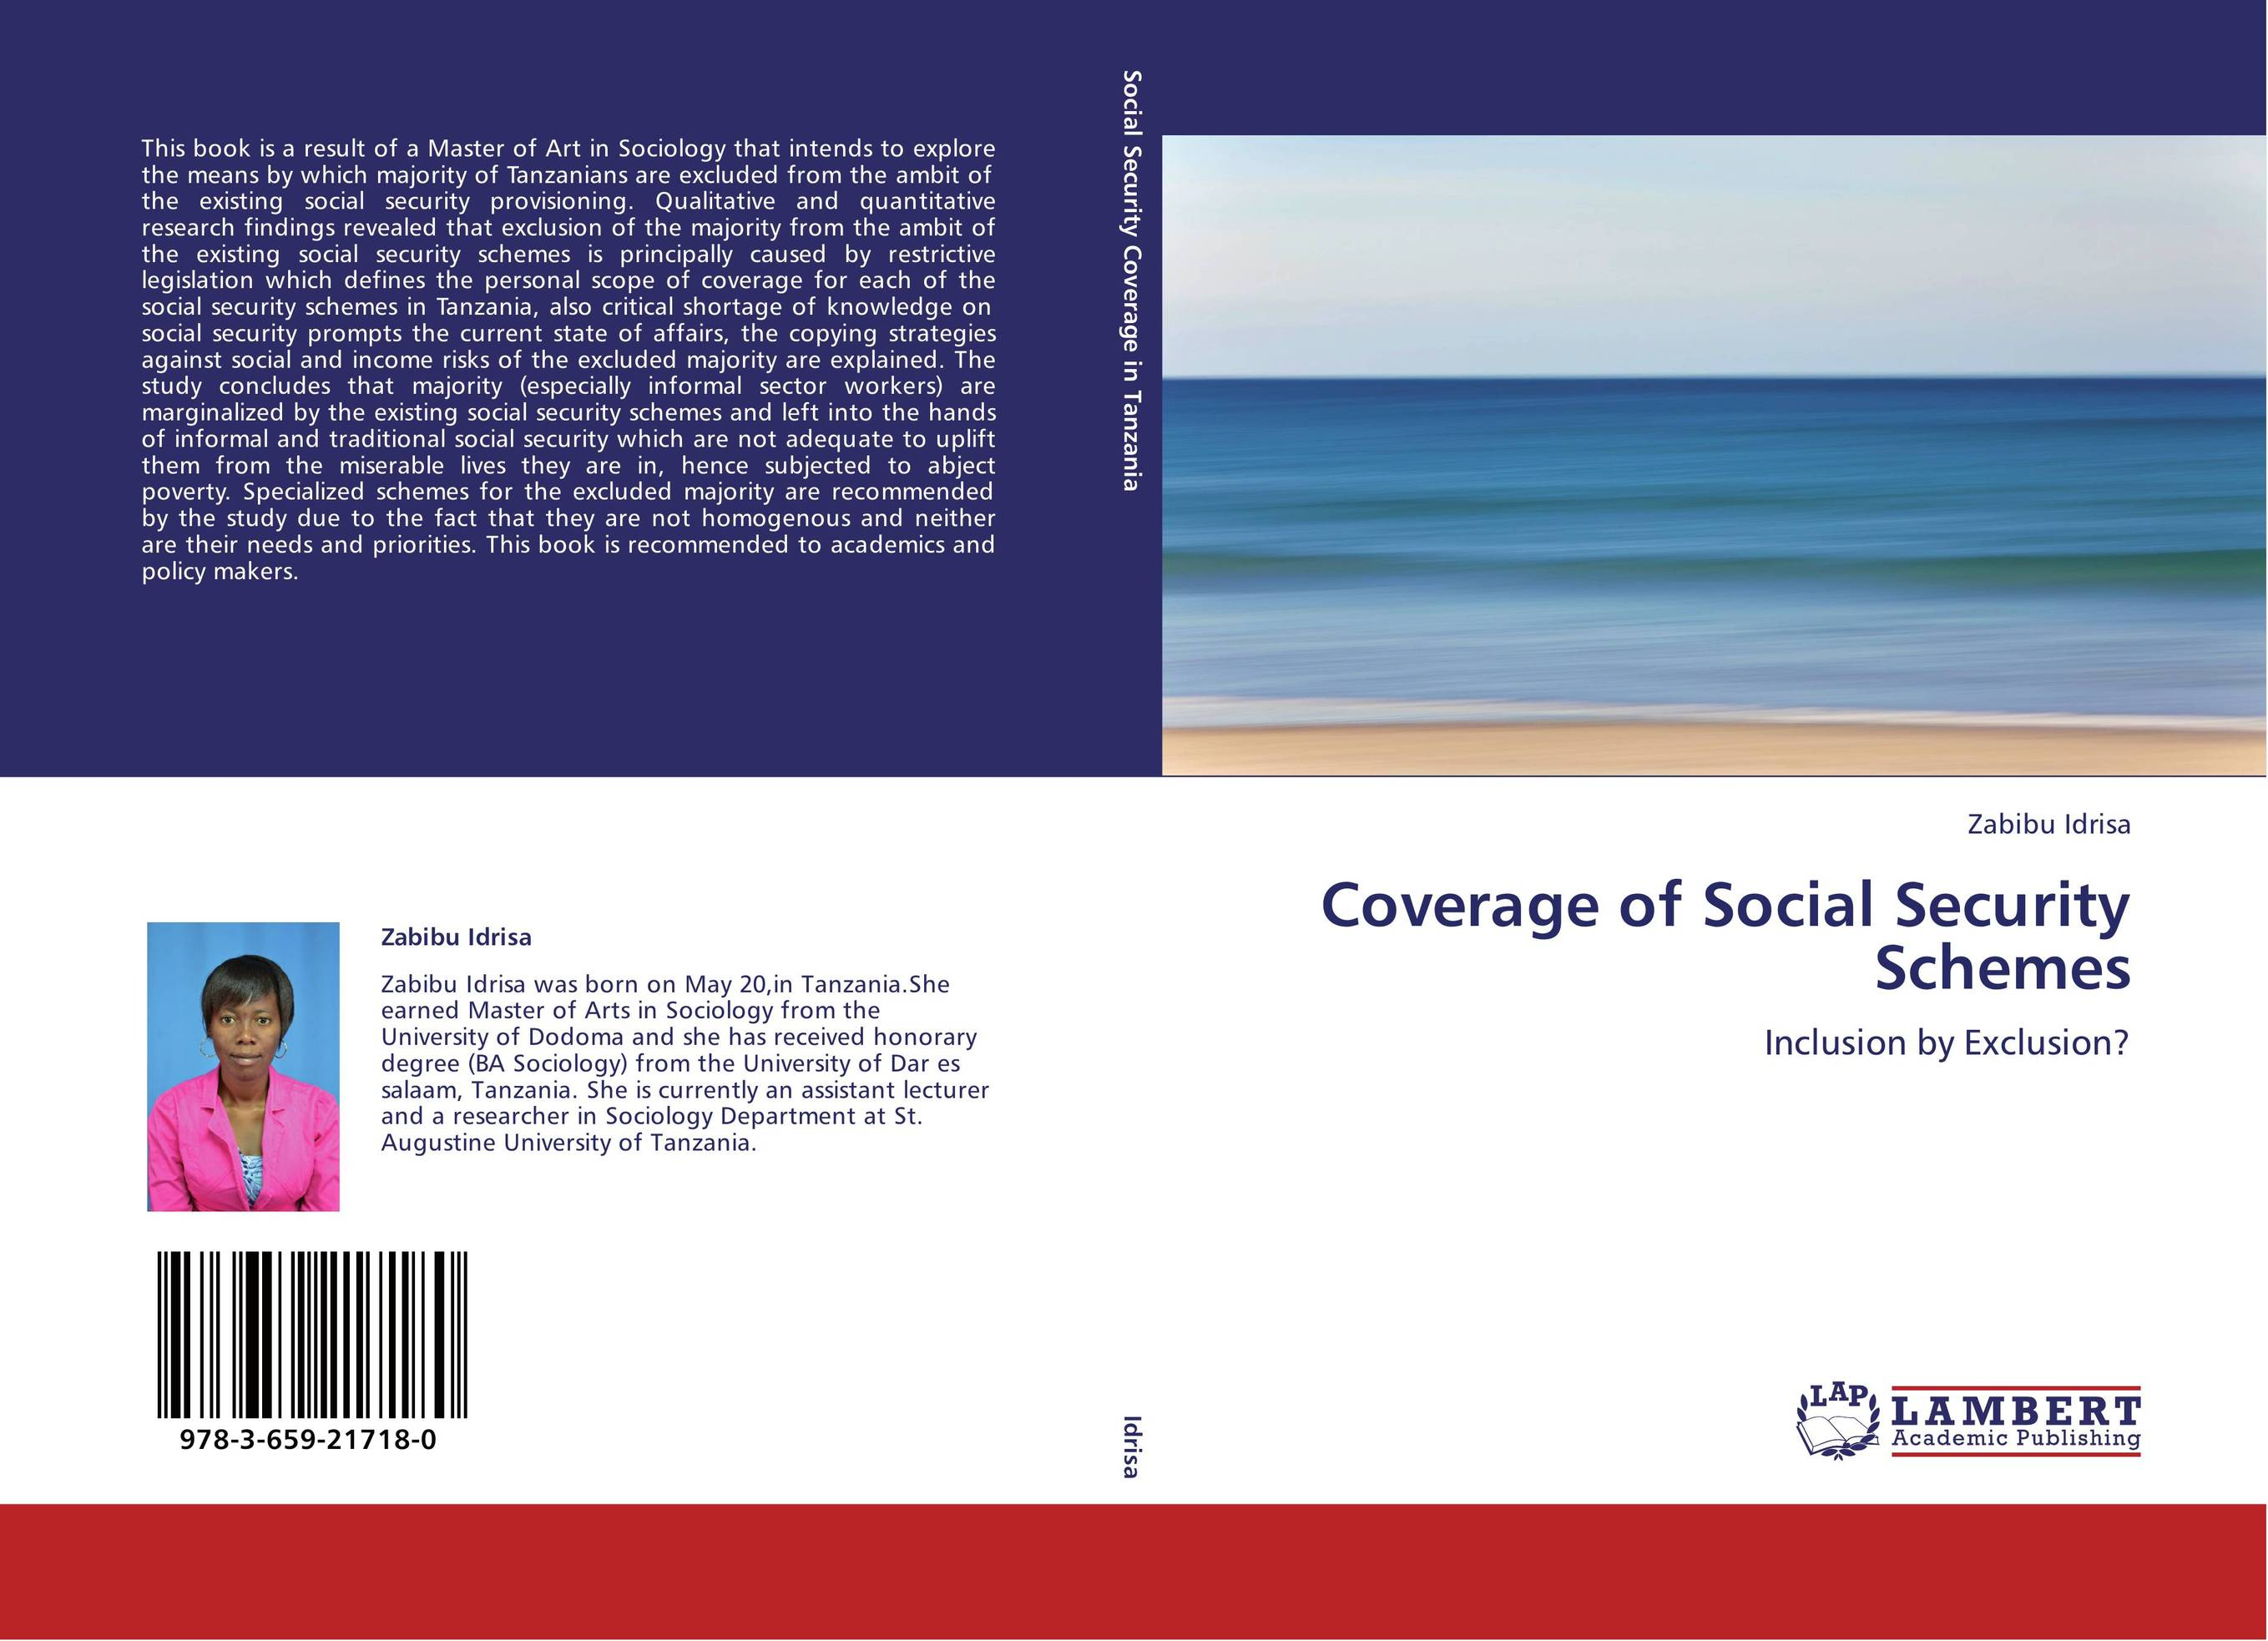 social security coverage tanzania Social security systems in tanzania  in terms of coverage, formal social security schemes cover only 6% of the population and focus on only afew risks.